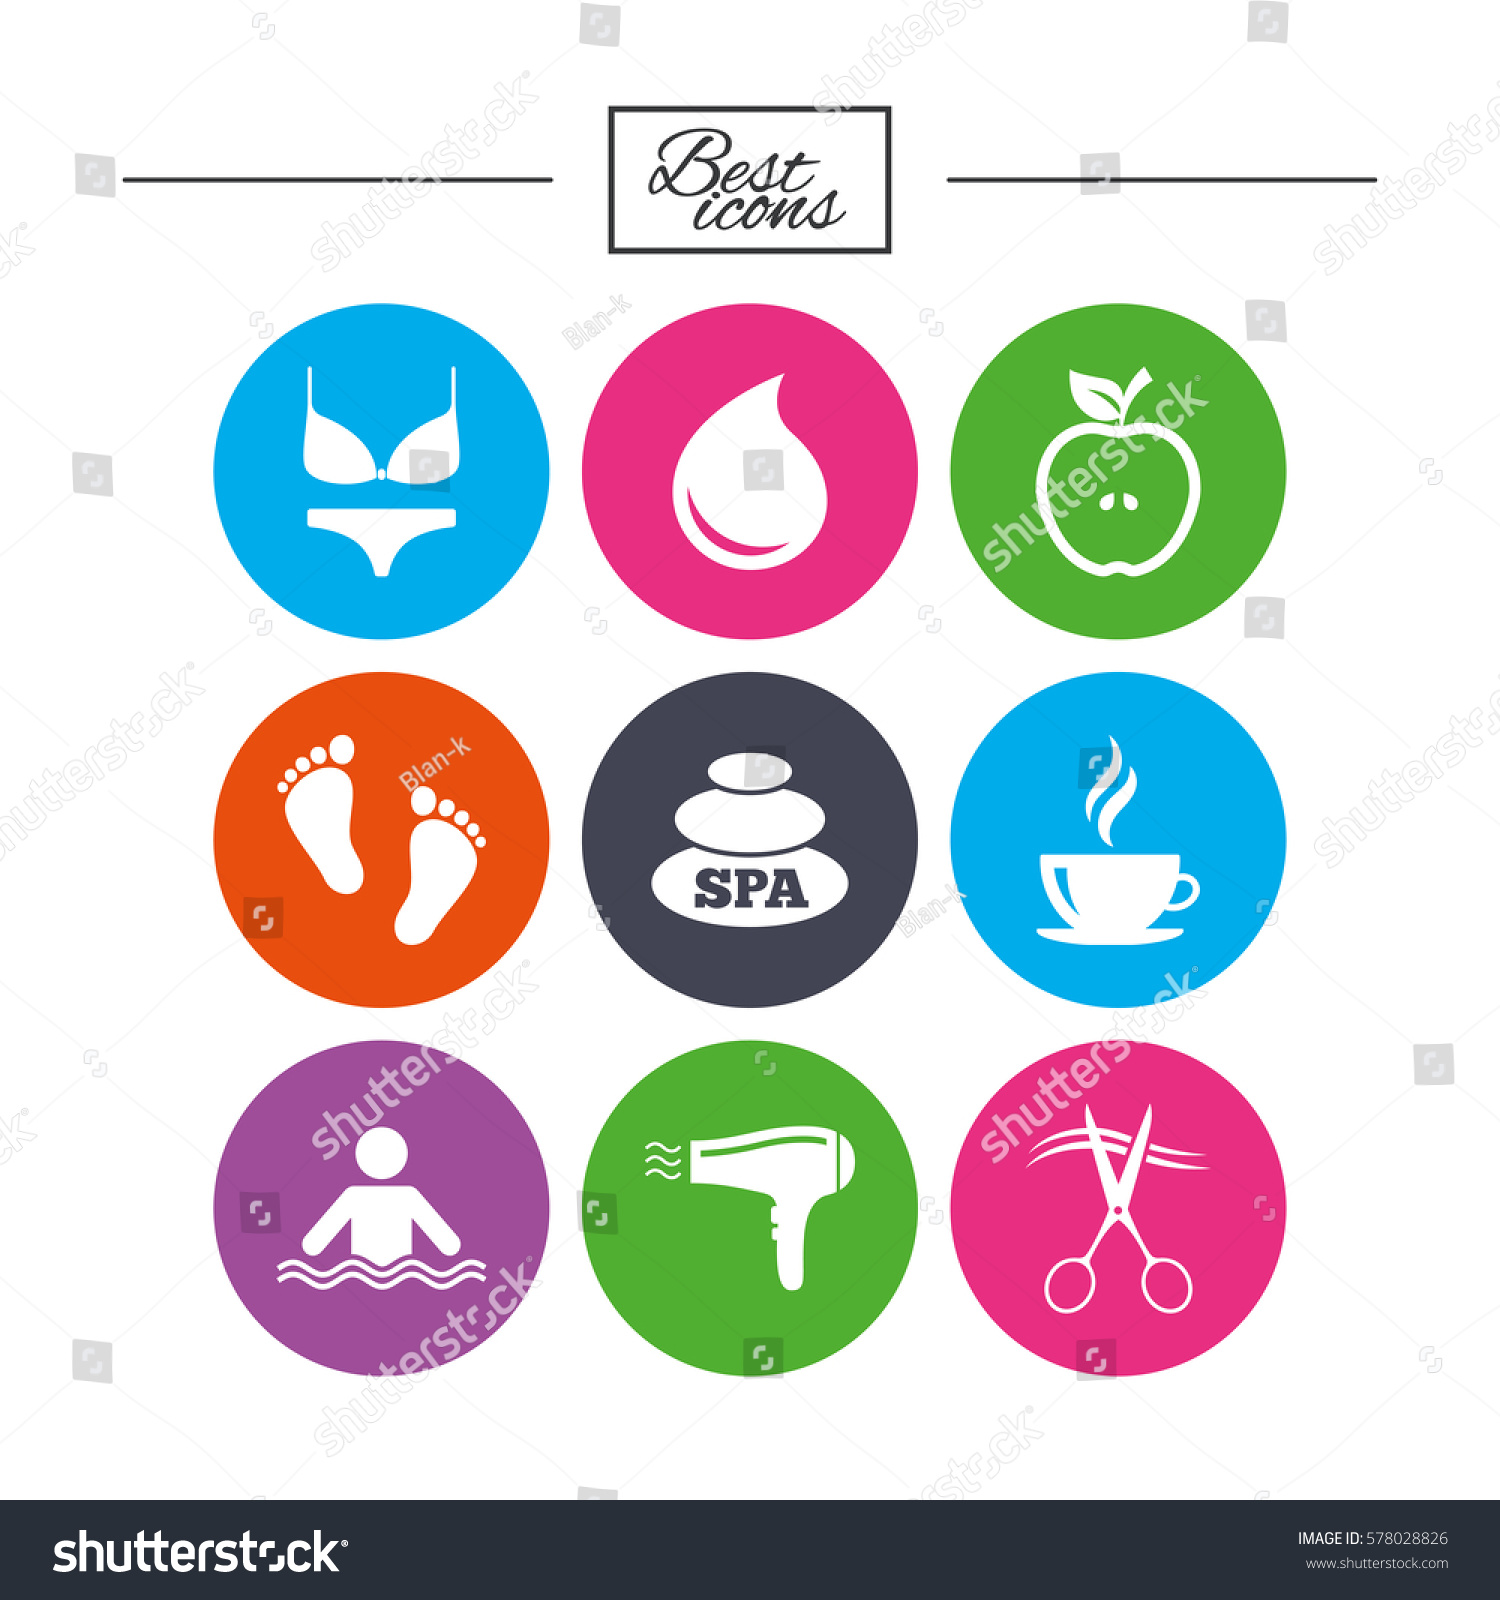 Swimming Pool Cleaning Symbols : Spa hairdressing icons swimming pool sign stock vector